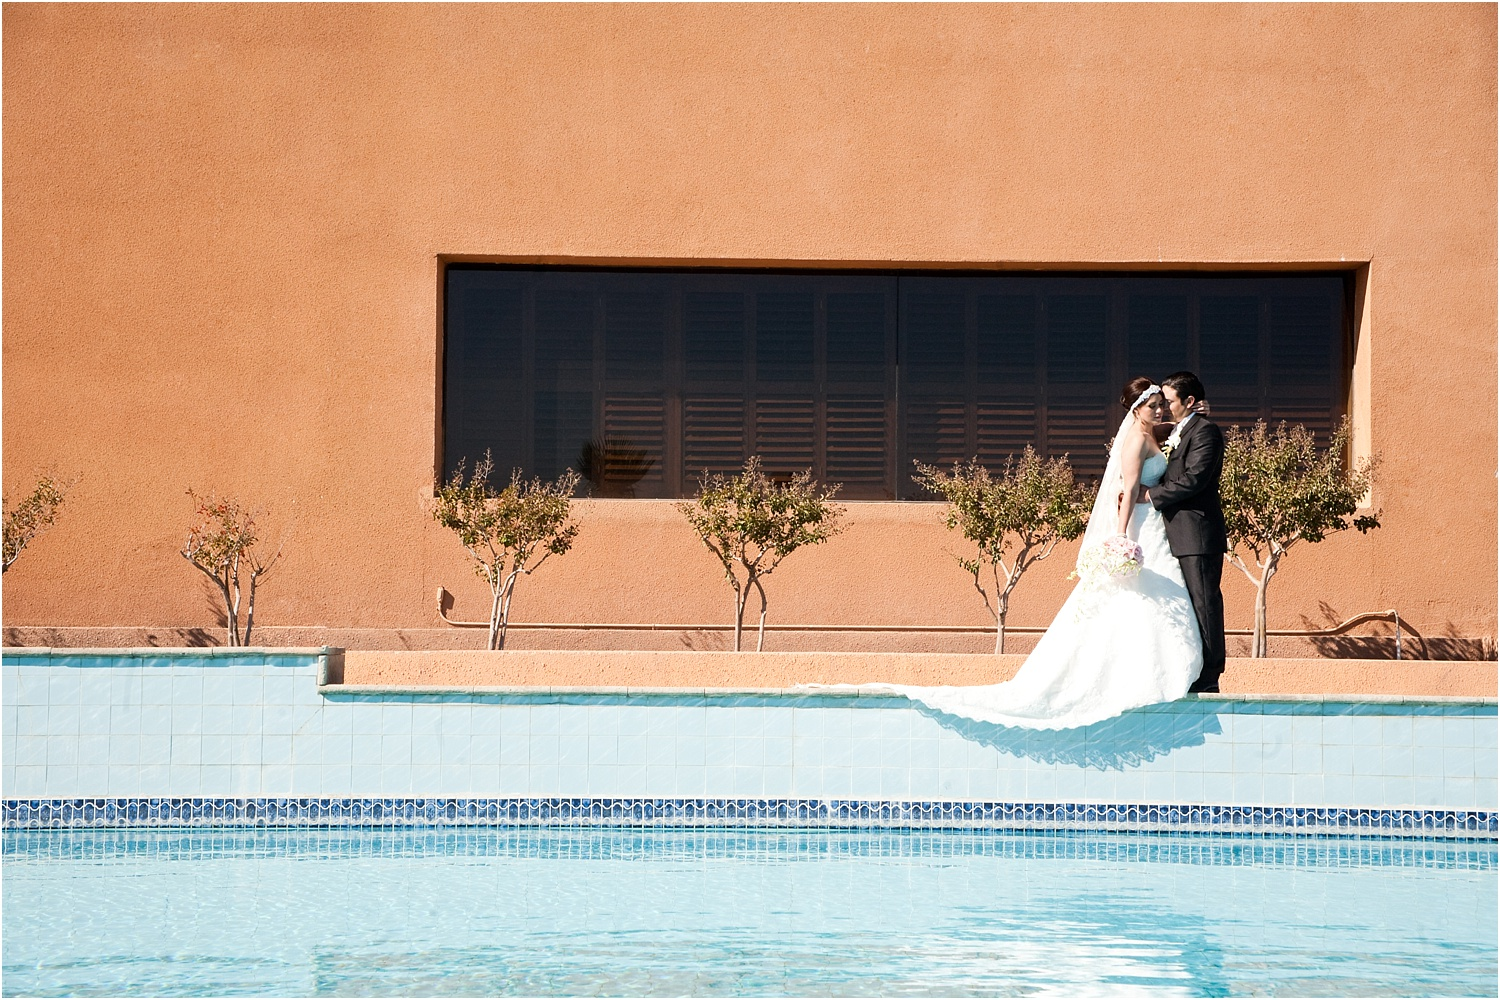 newlyweds poolside - How to make Portrait Photography in Bright Midday Sun.